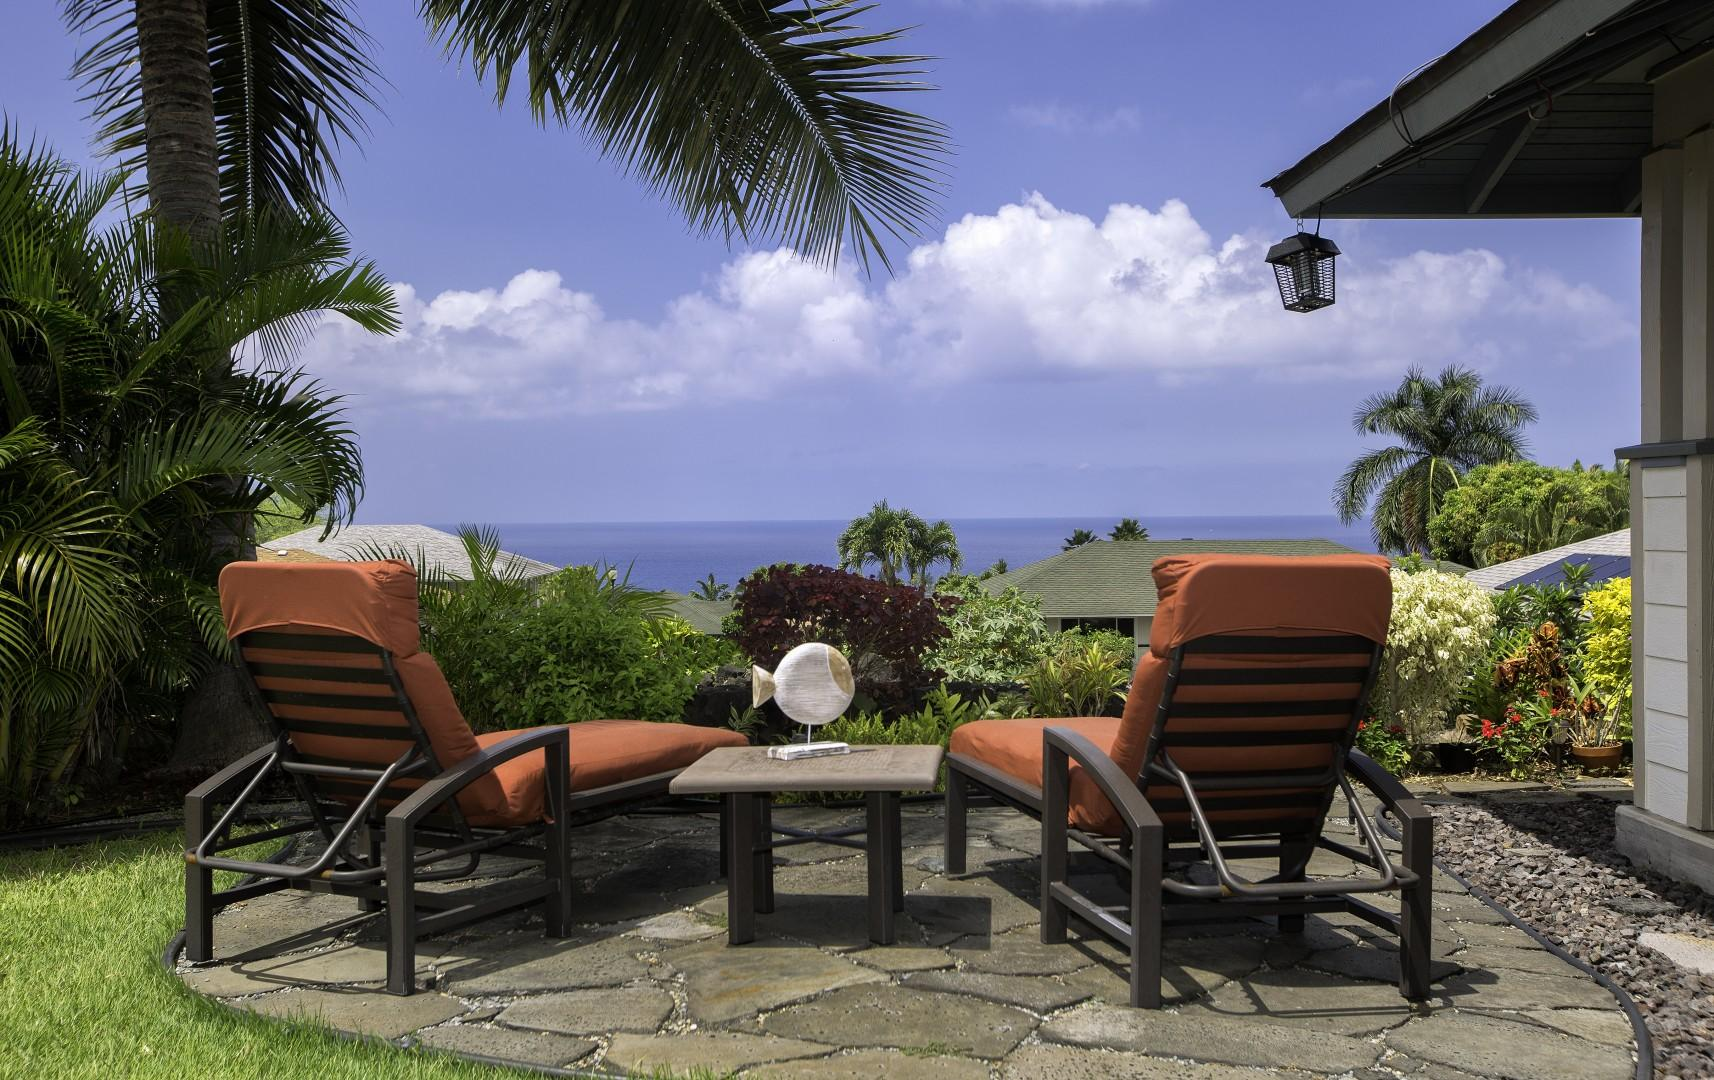 Relax with a view!